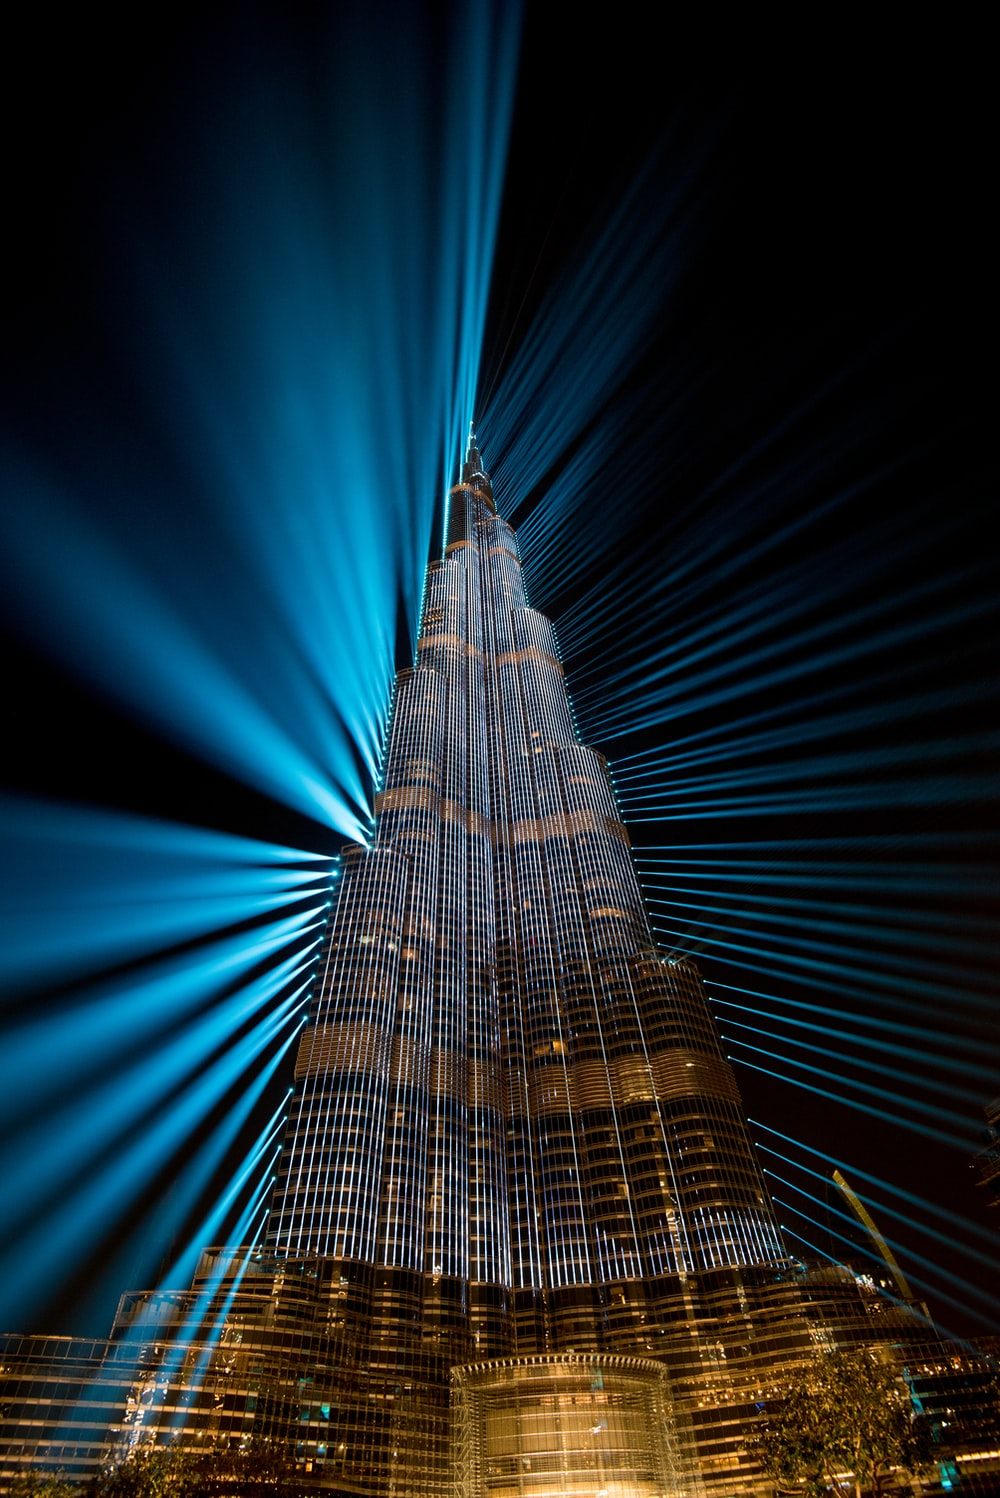 Light and sound show at Burj Khalifa